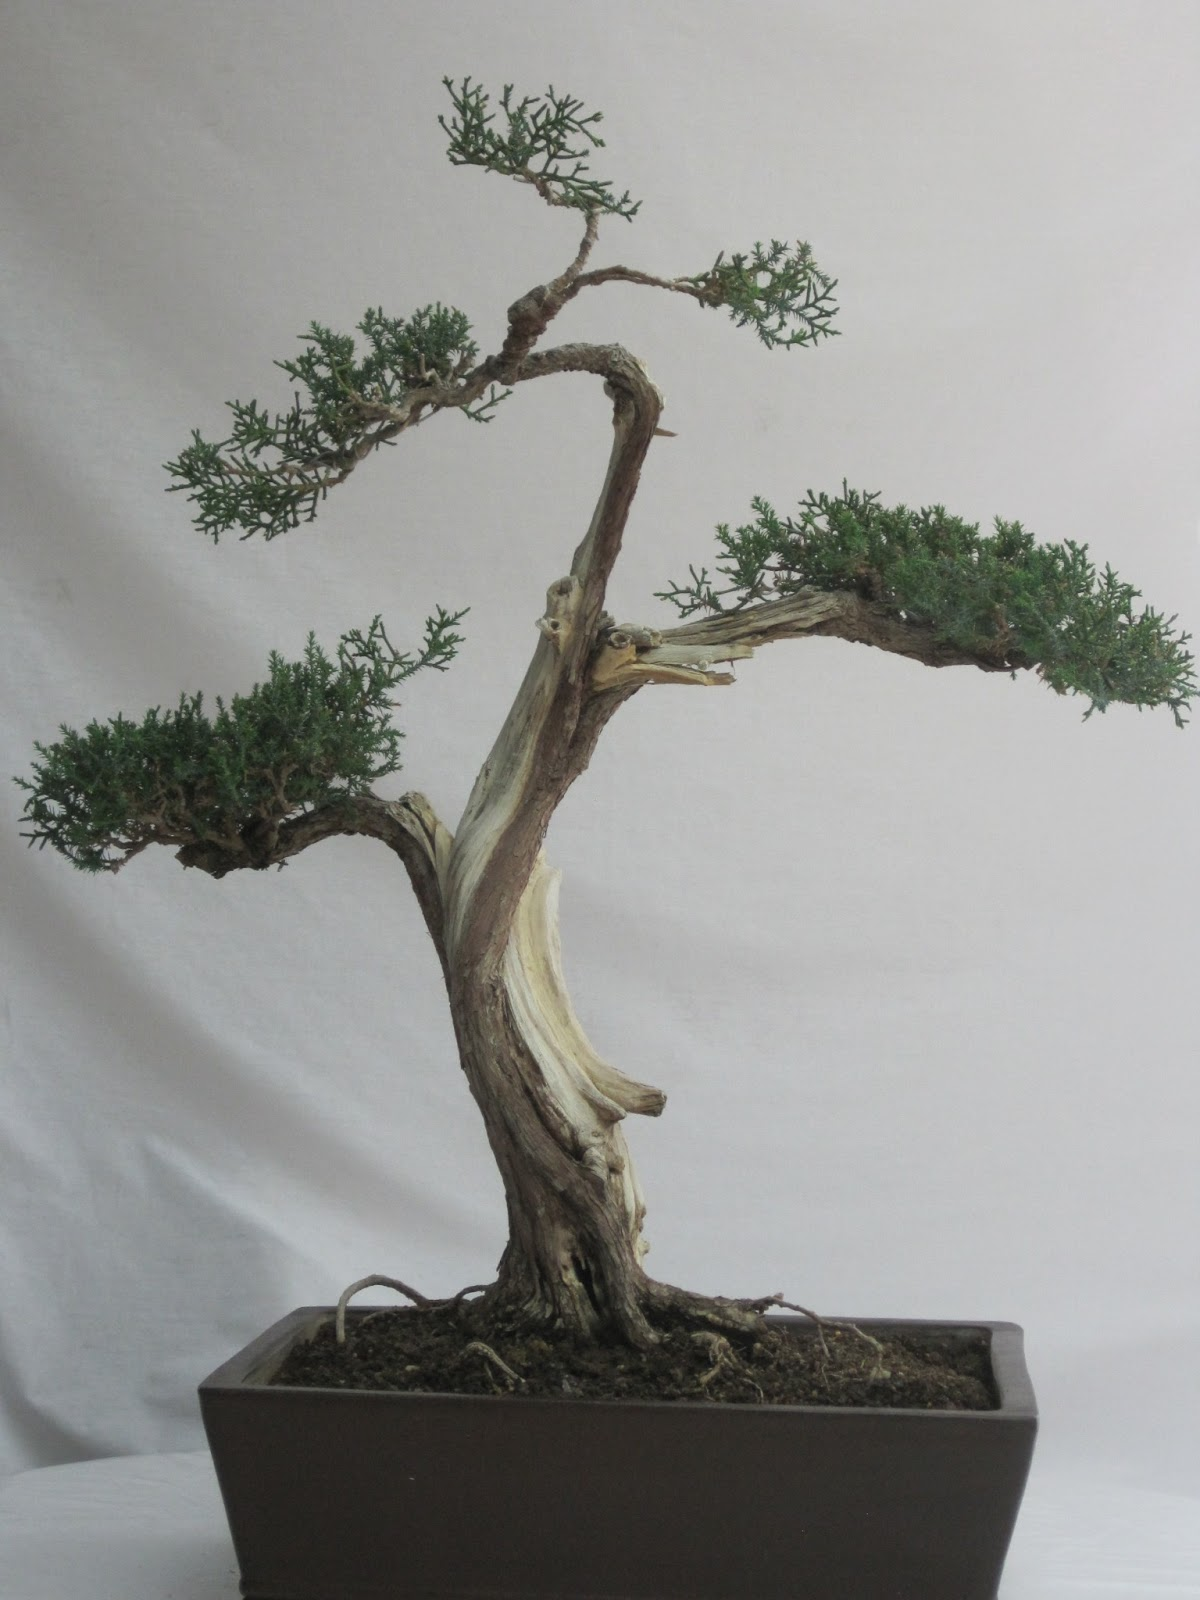 ShoChiku Bai Bonsai Club